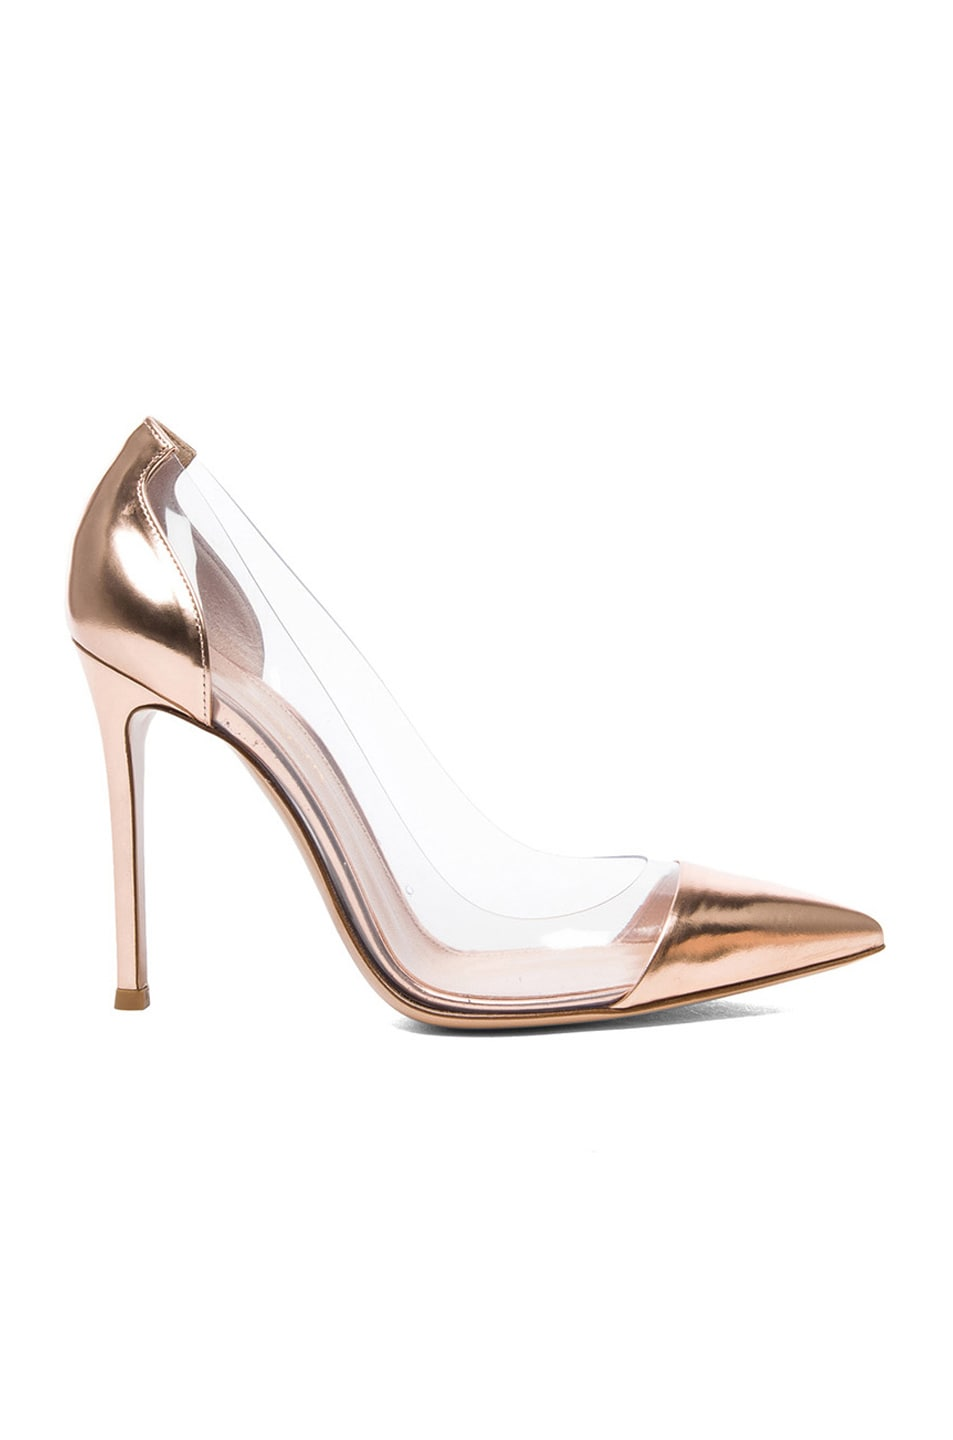 Image 1 of Gianvito Rossi Leather & Plexy Pumps in Rose Gold